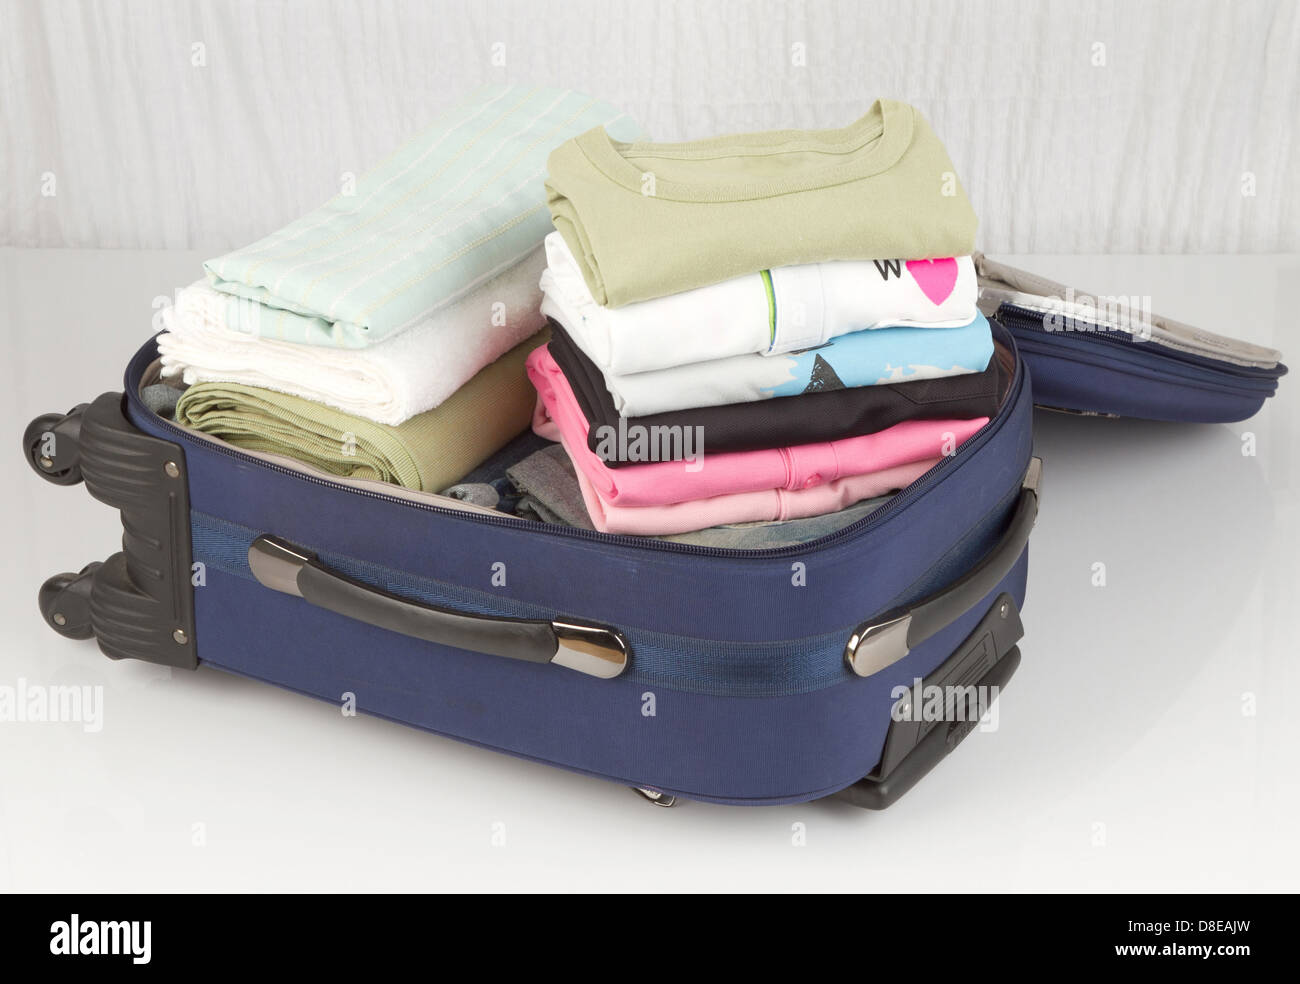 An opened suitcase packed with a lot of colorful cloths - Stock Image